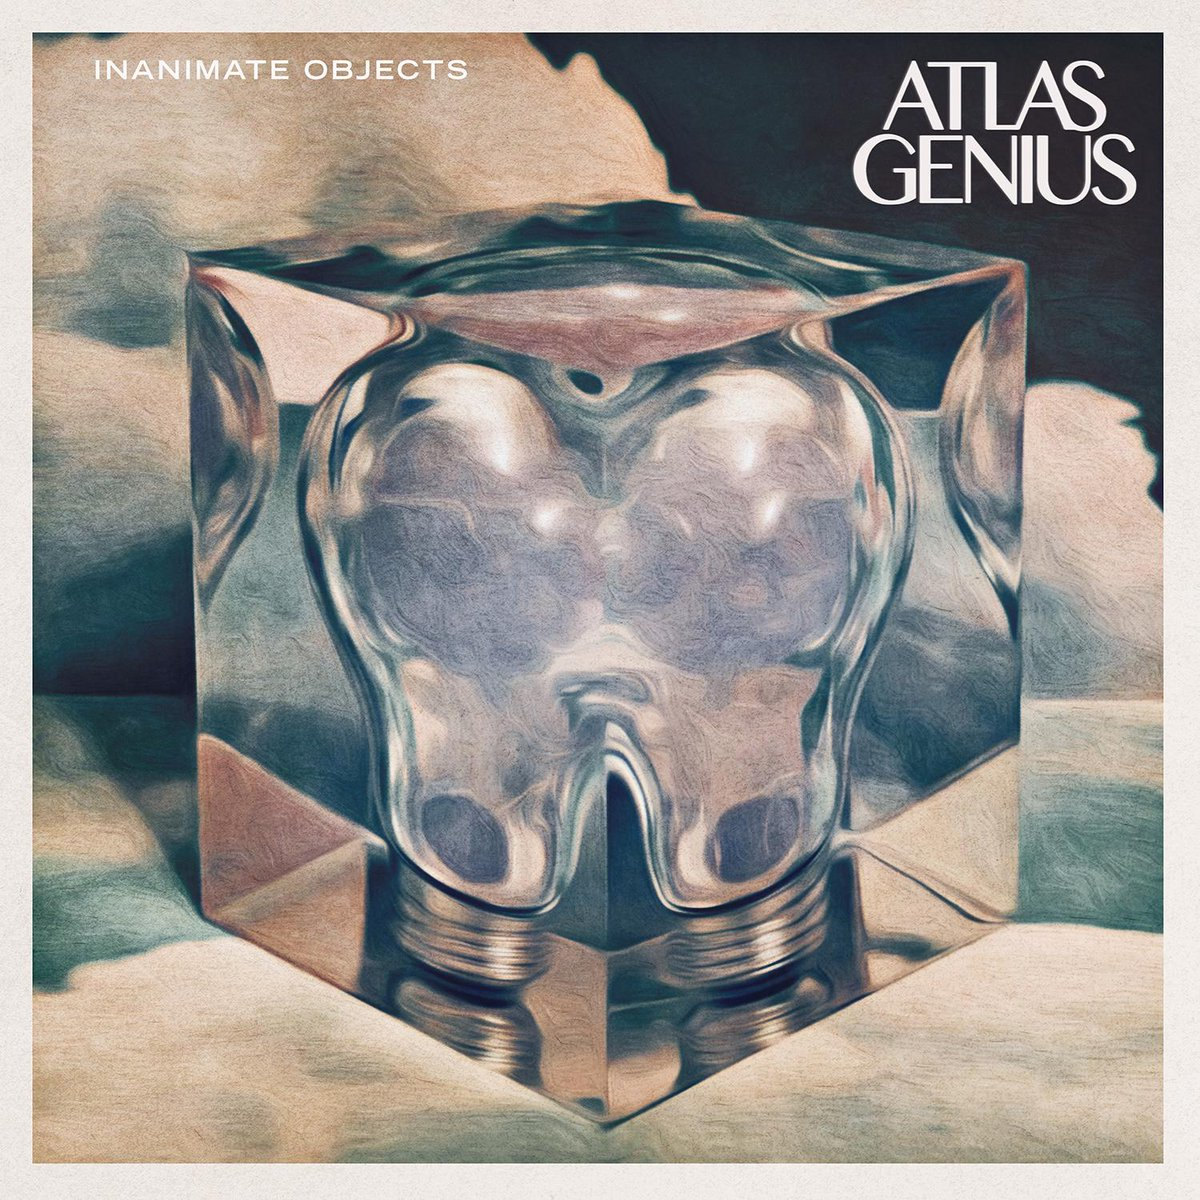 Without further adieu...our new album, Inanimate Objects, will be coming out on August 28th WORLDWIDE. http://t.co/FPJwdATUky